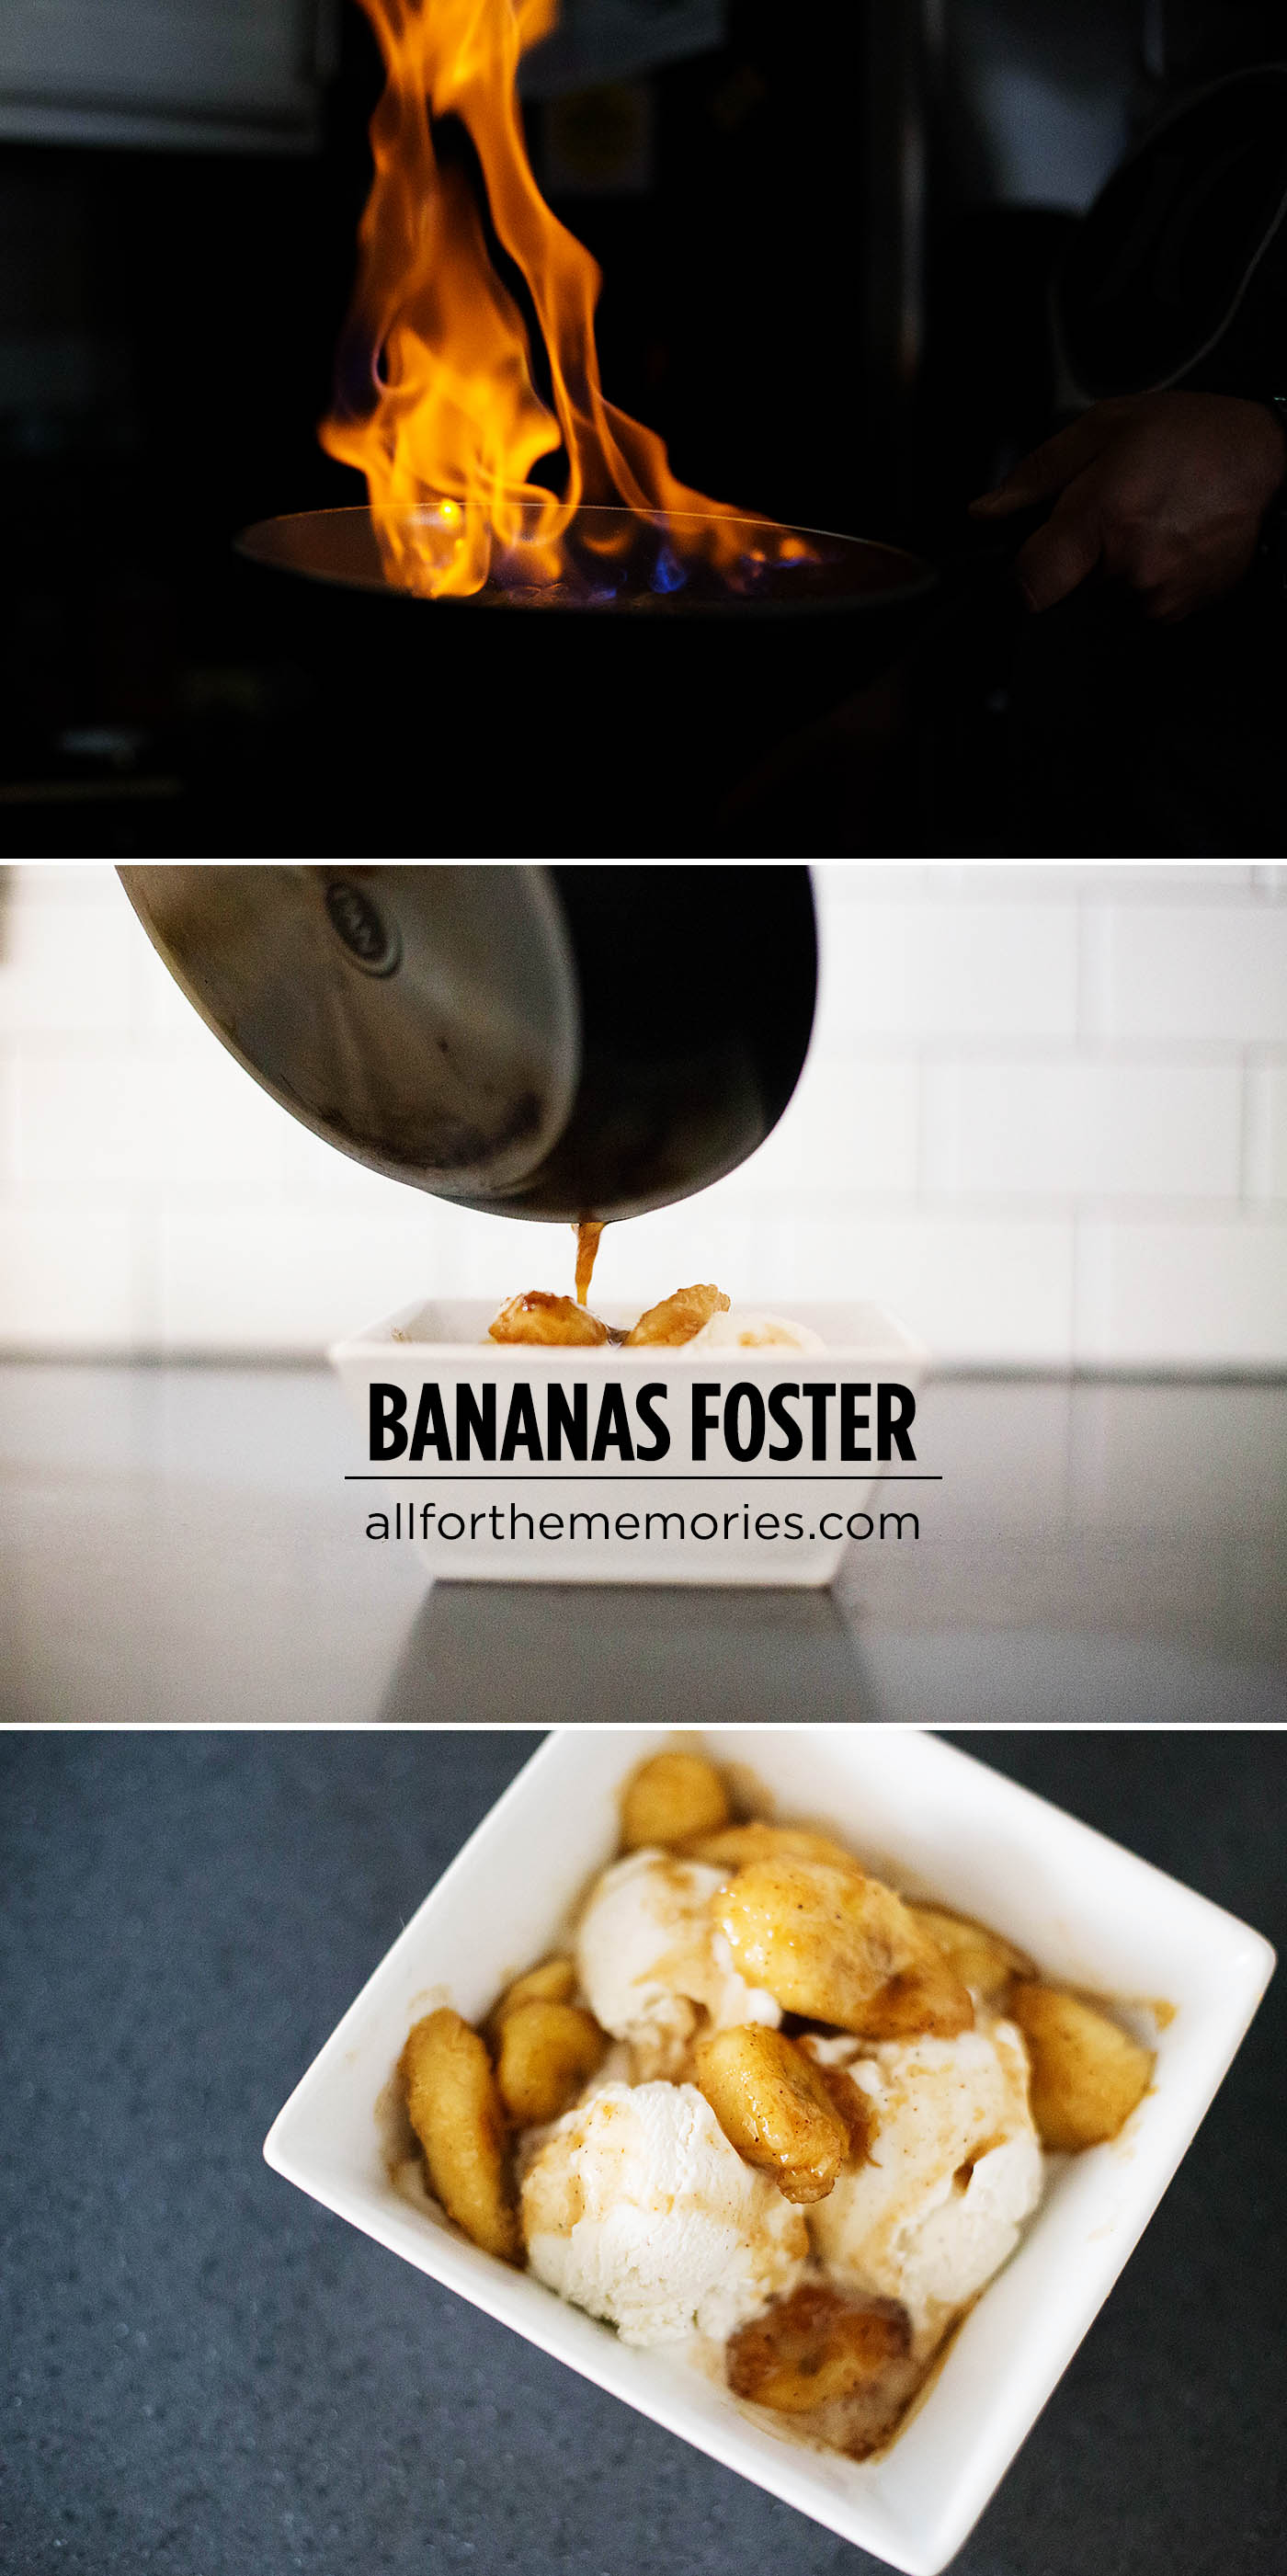 Bananas Foster recipe (with video) It's easier than you think and gluten free too!